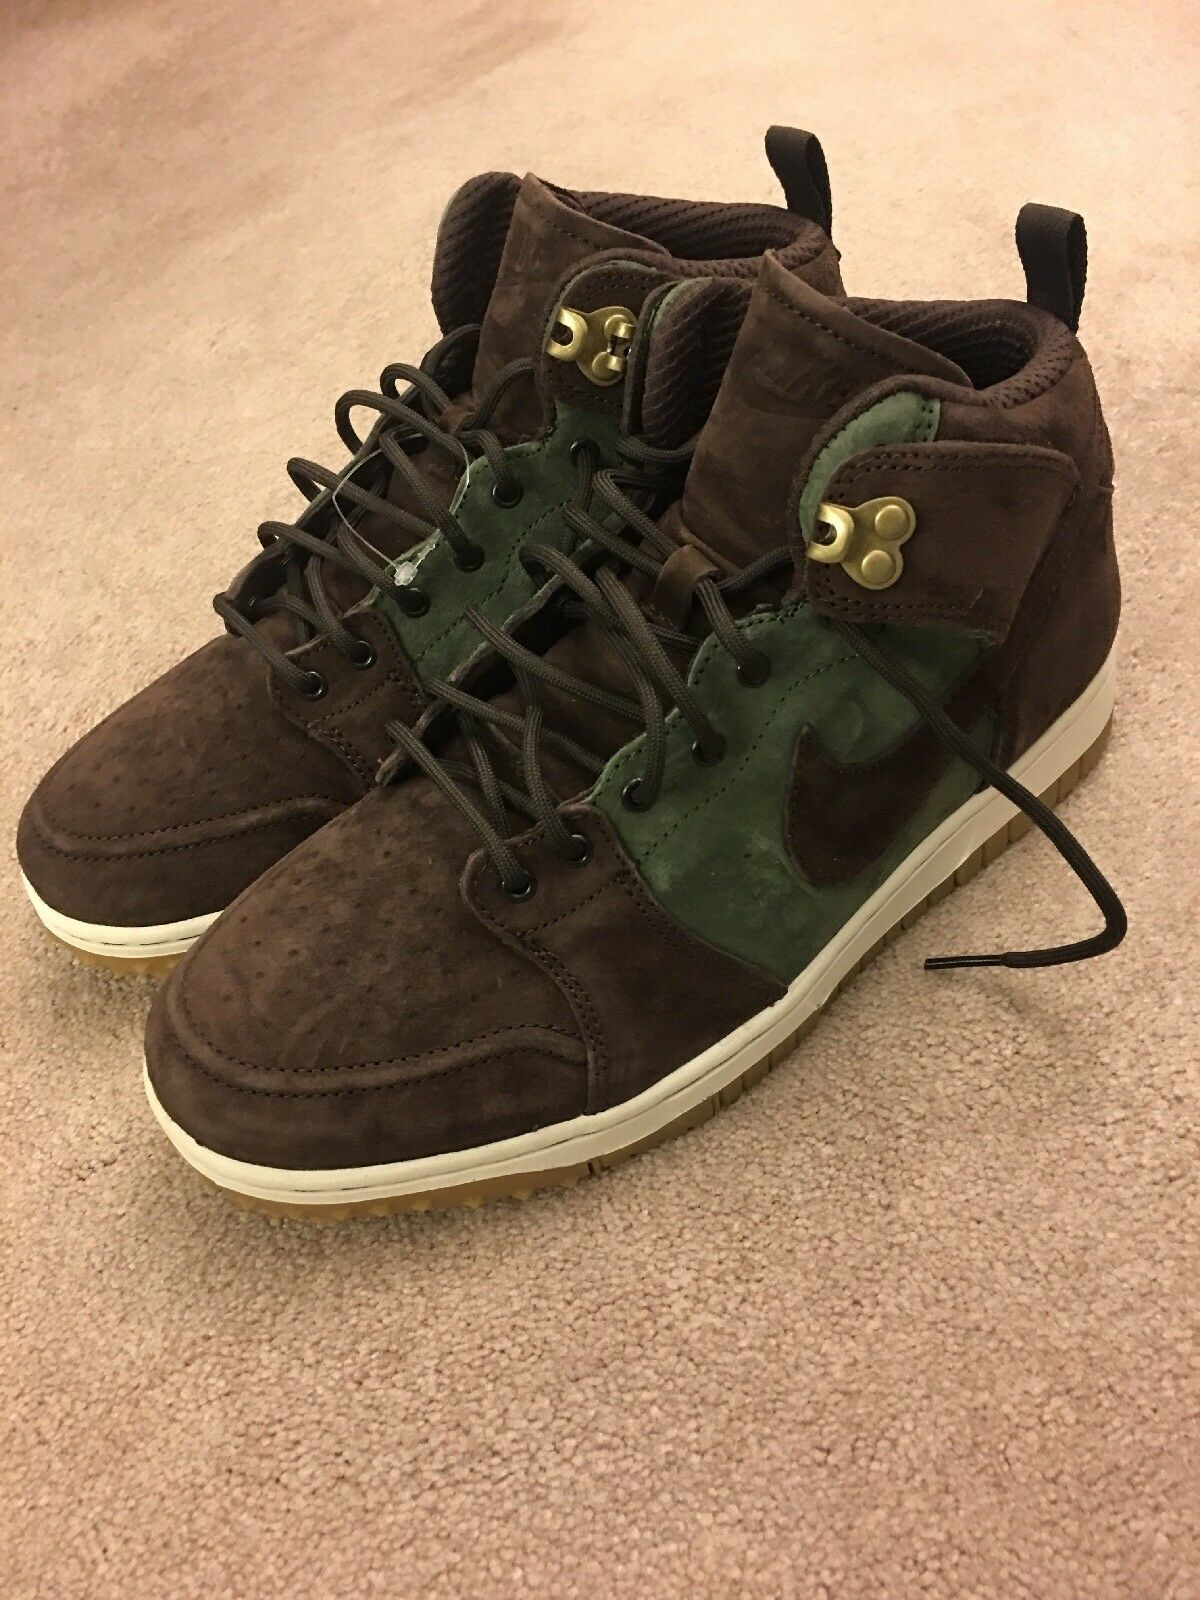 150 Nike Dunk CMFT Sneakerboot army olive 1 suede mid air brown force 9 acg QS